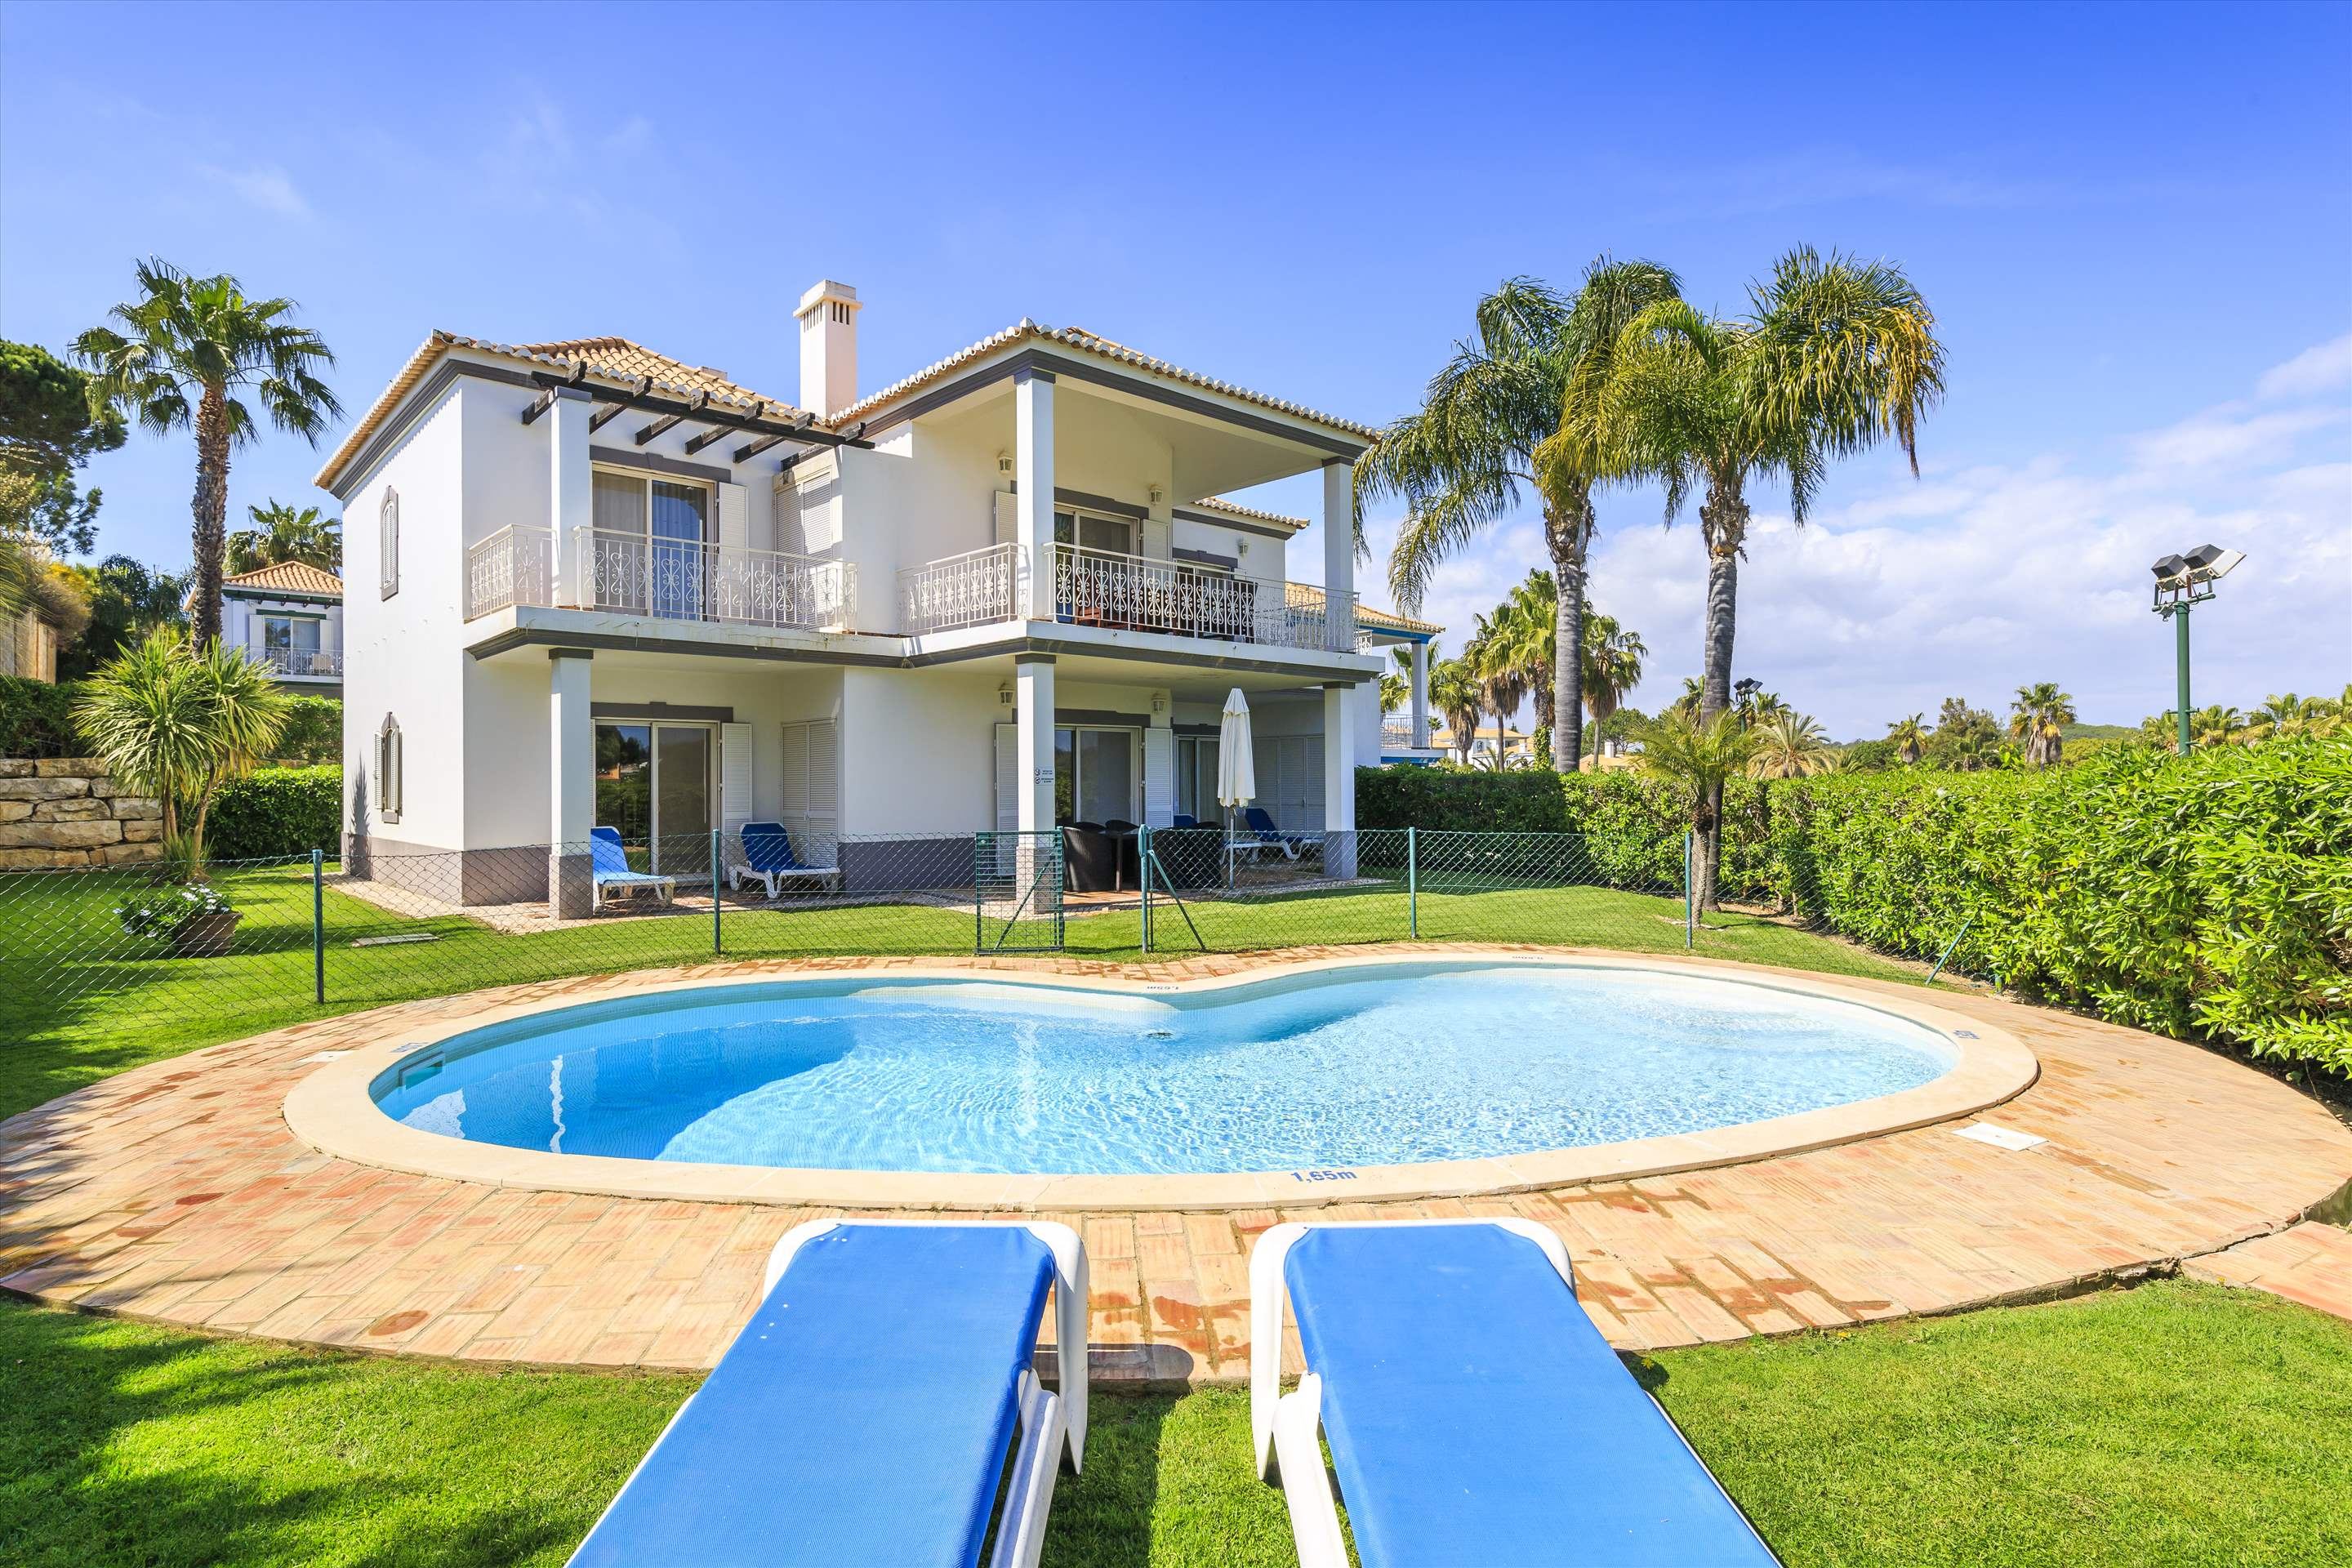 Encosta do Lago 2 Bedroom Apt, Private Pool, 2 bedroom apartment in Encosta do Lago Resort, Algarve Photo #1